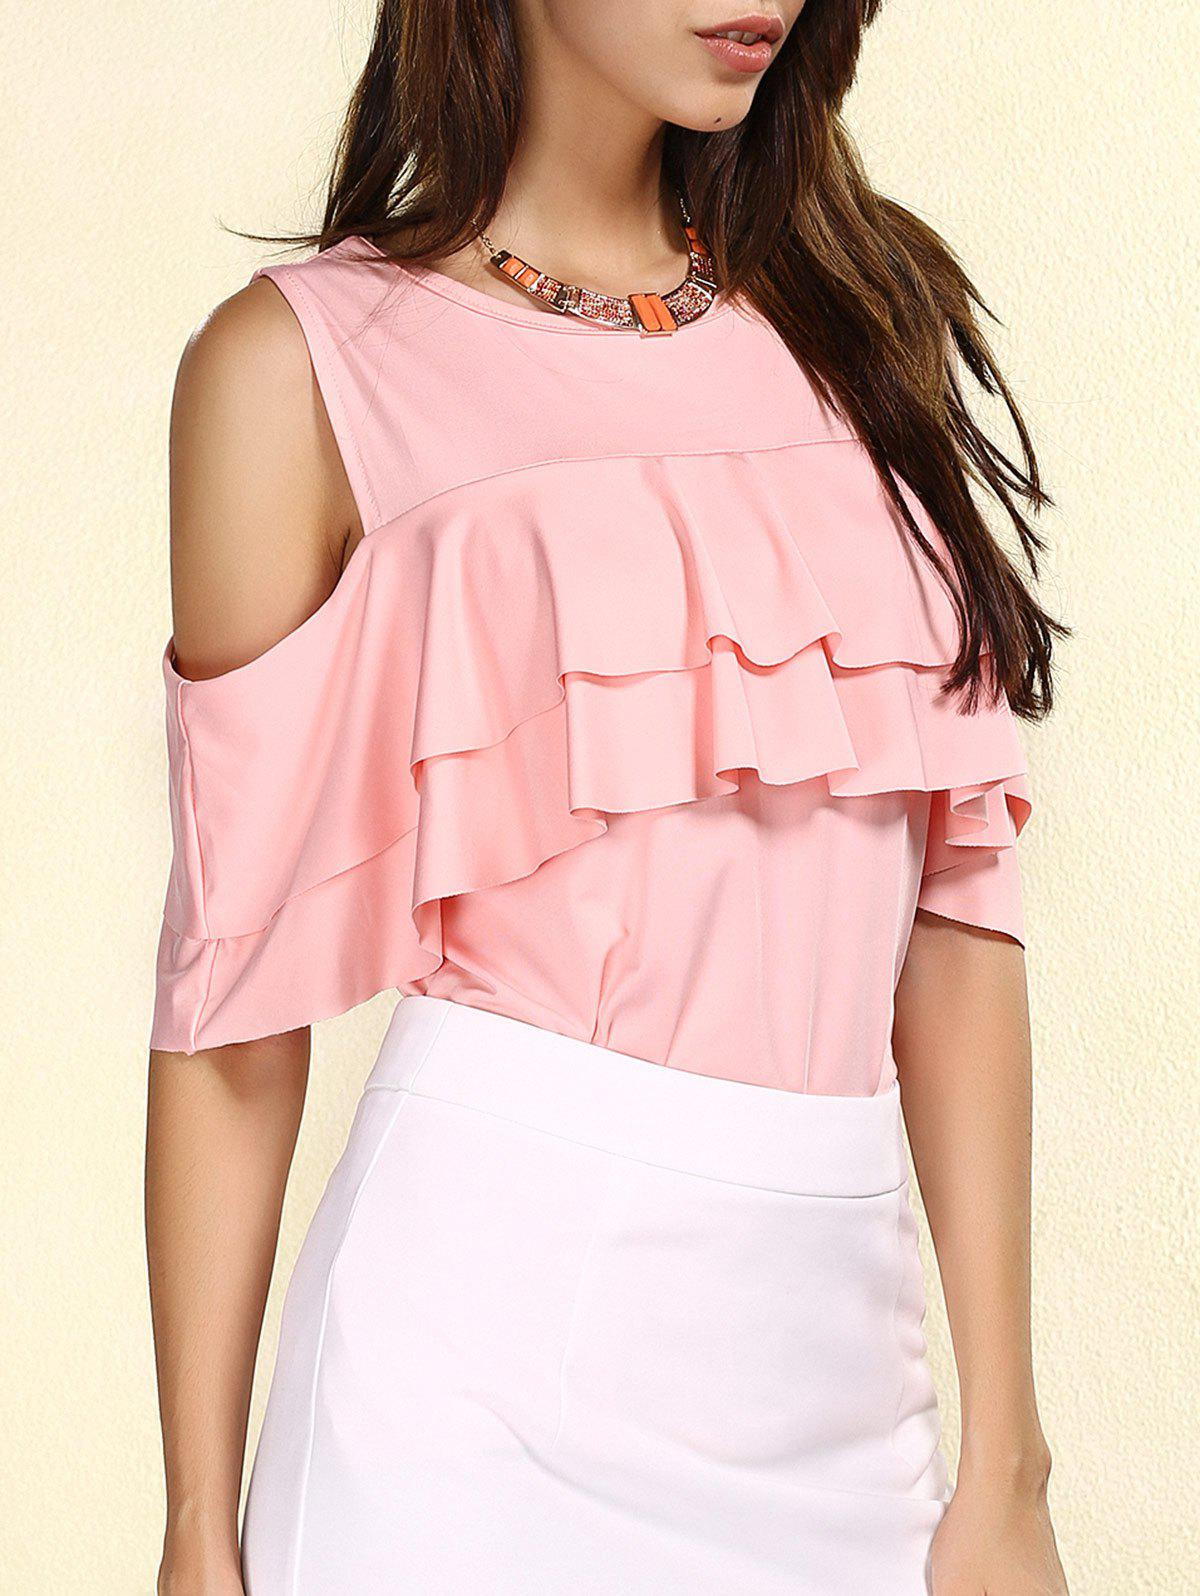 Women's Stylish Jewel Neck Cut Out Flounce T-Shirt - LIGHT PINK M